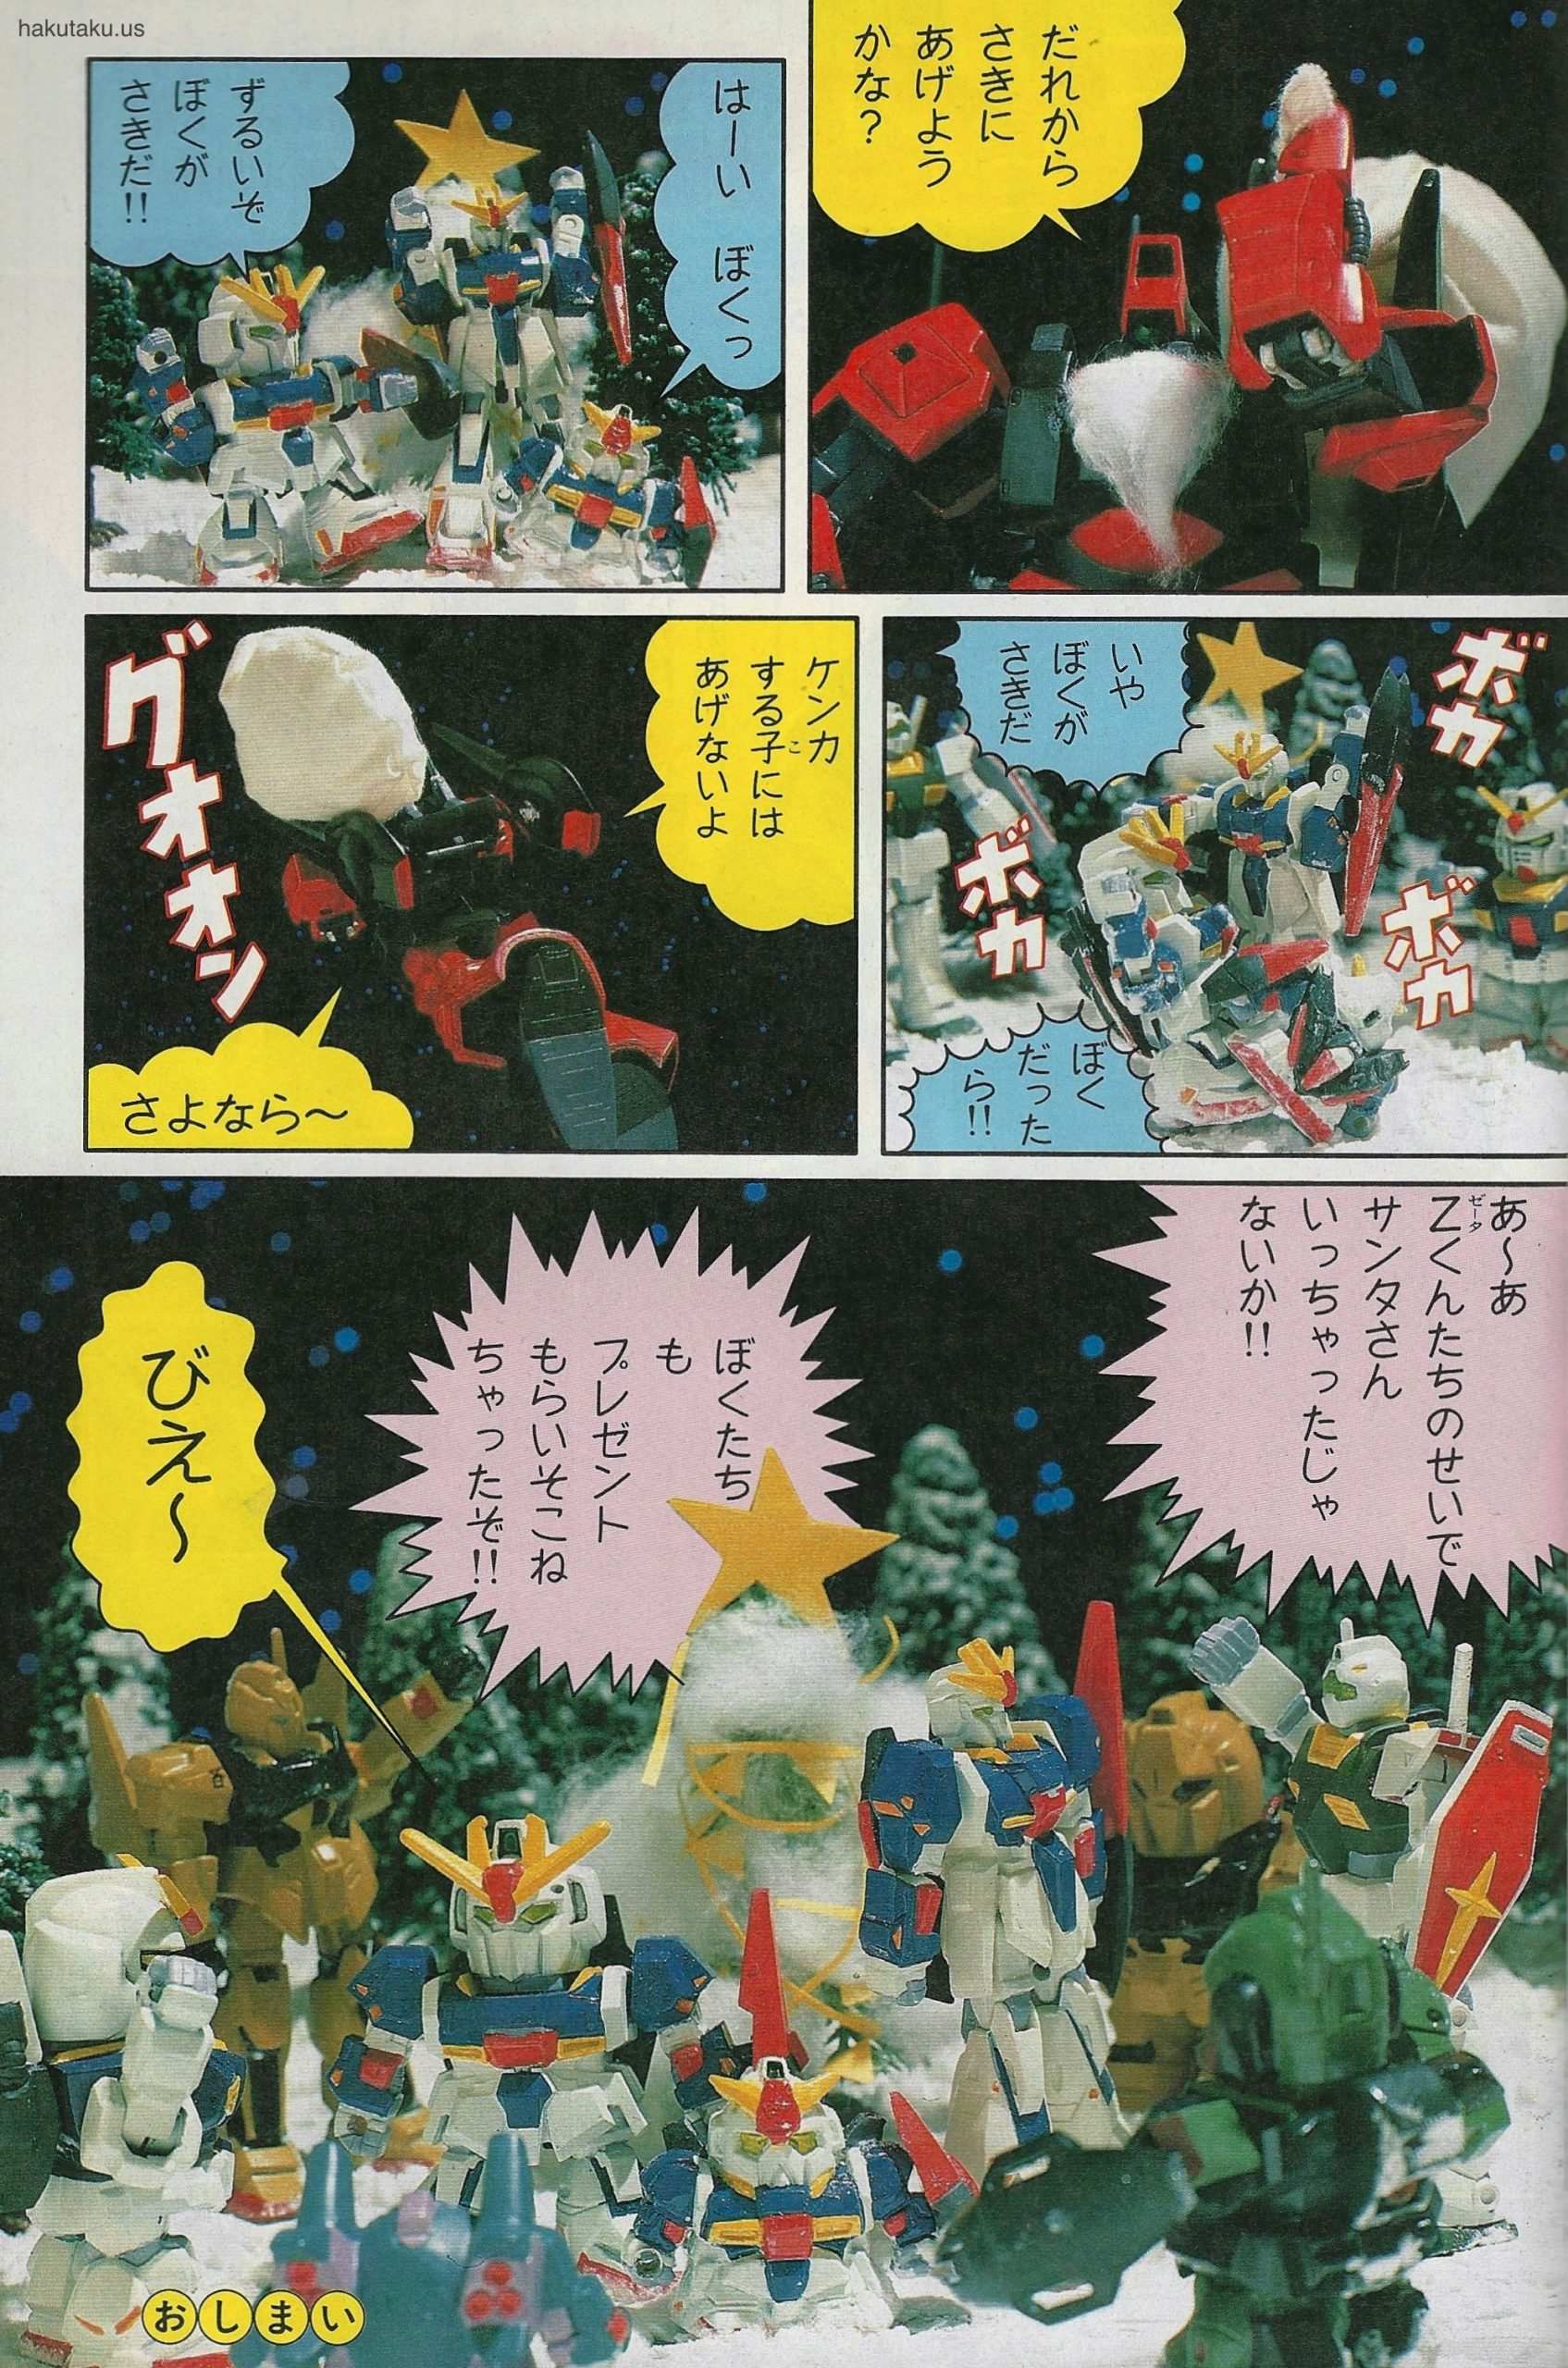 Zeta Gundam Terebi Land comic page two